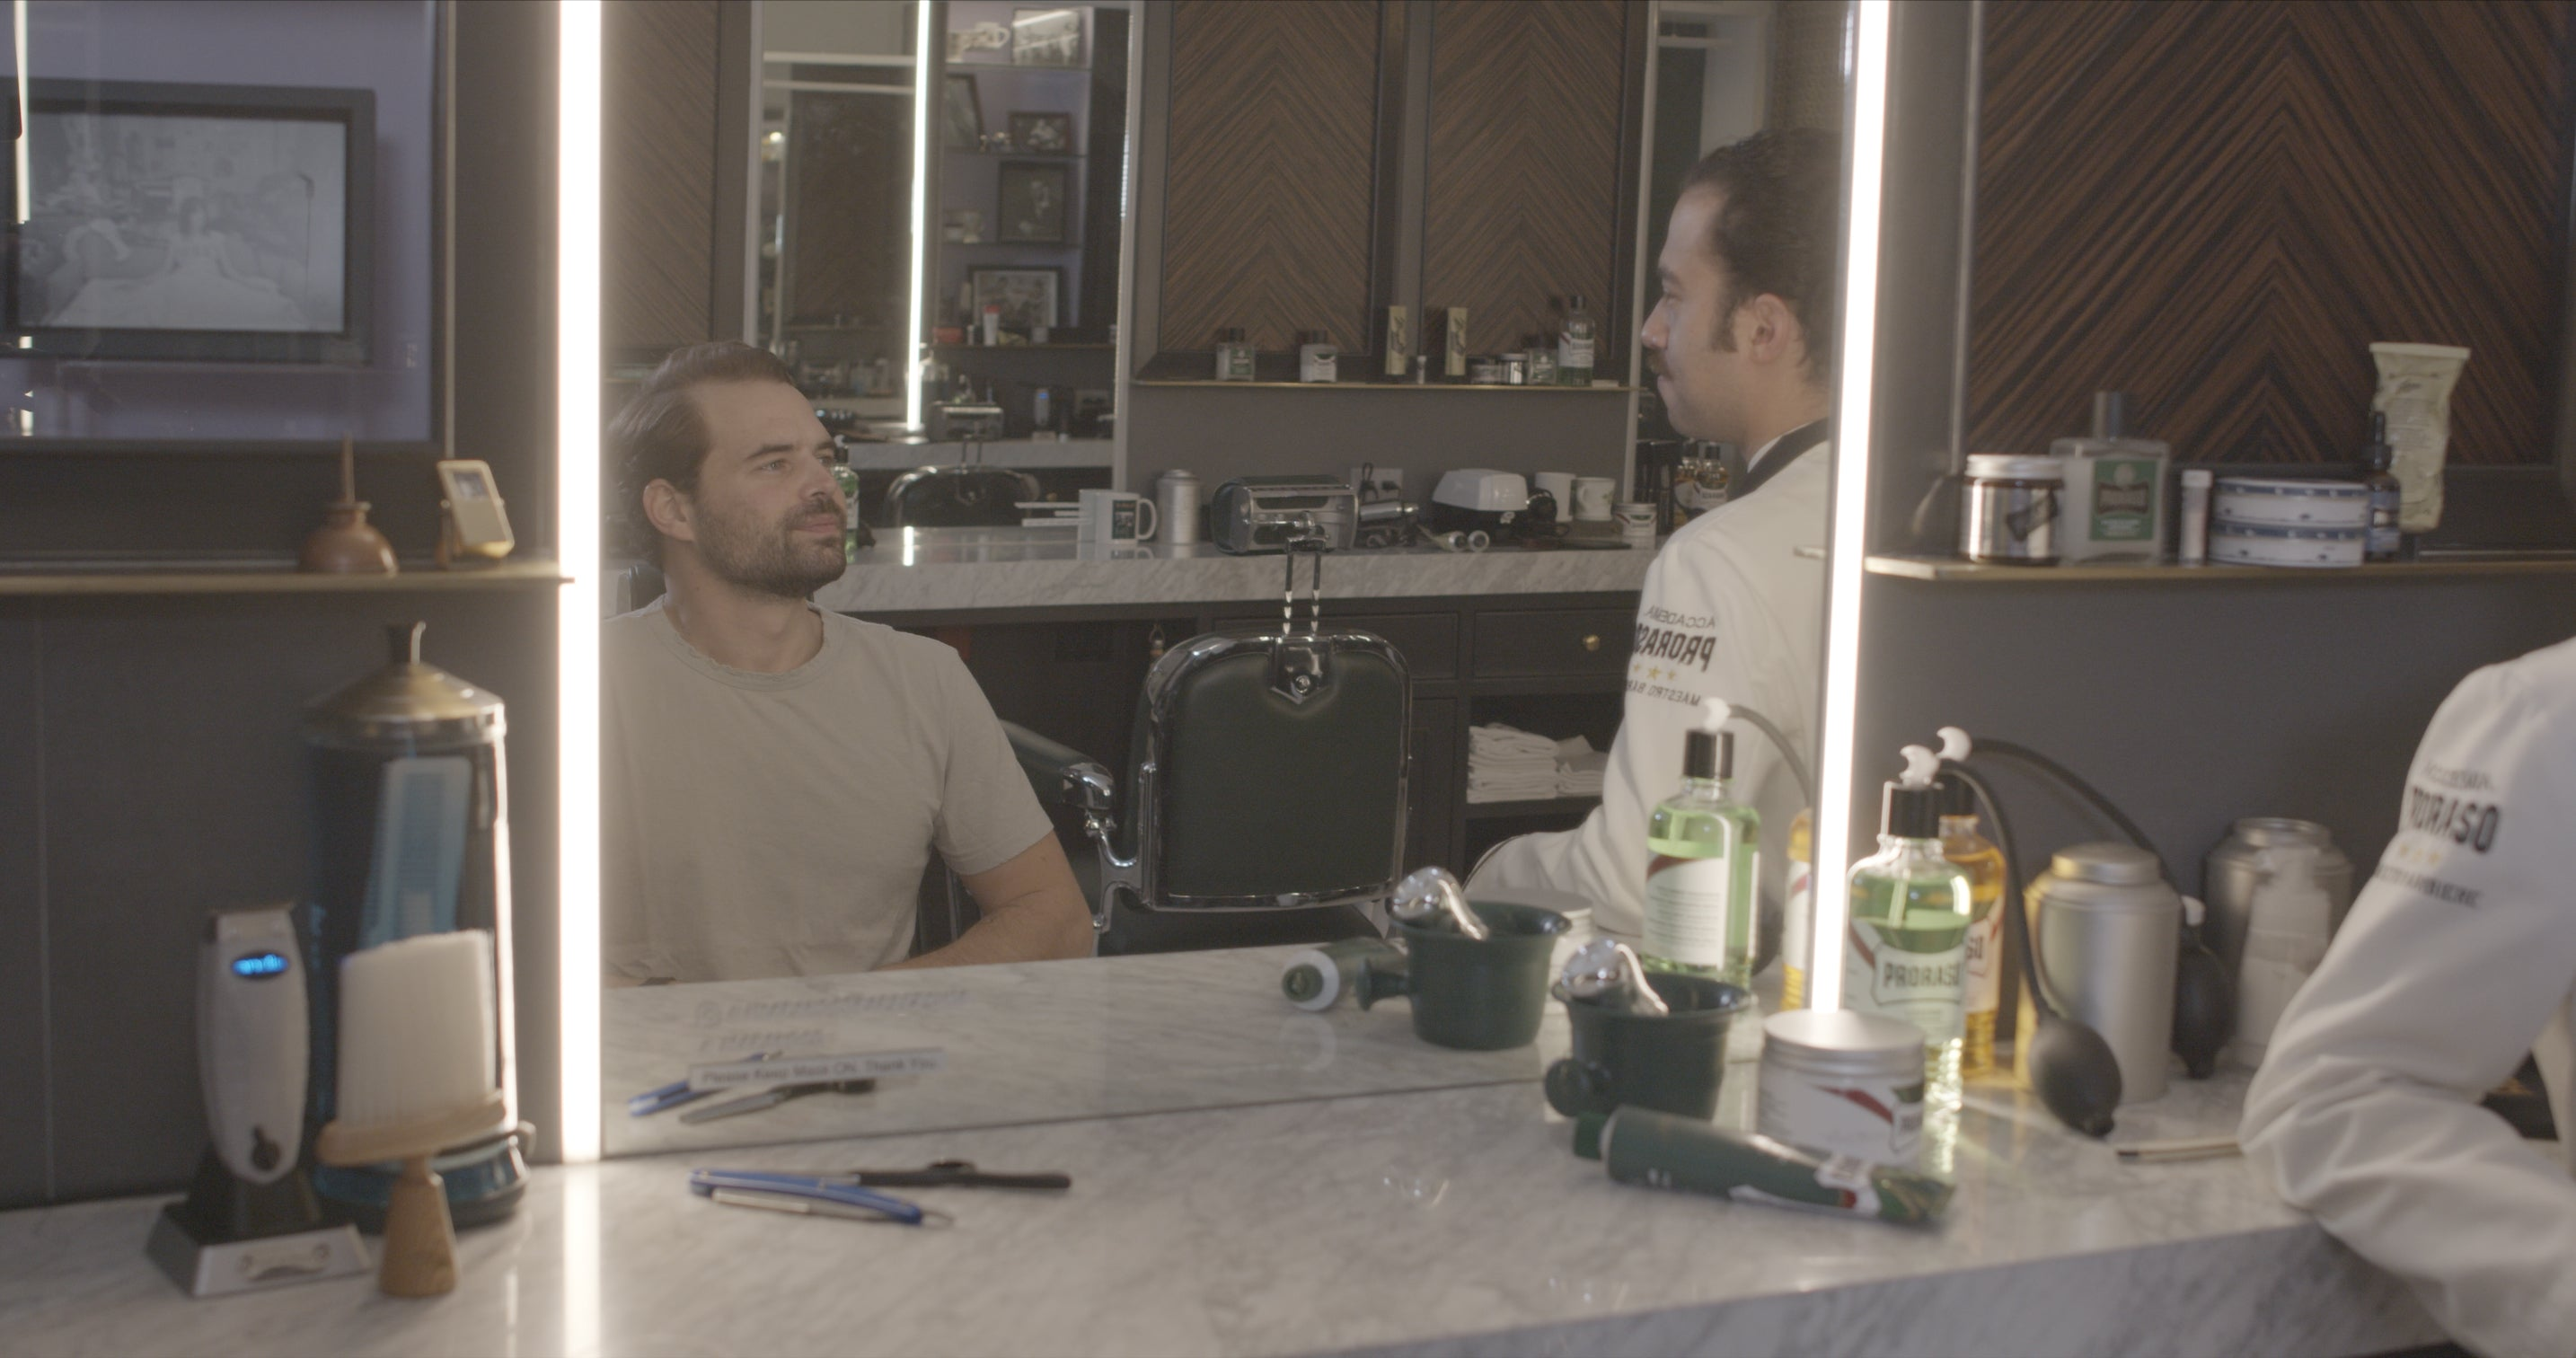 Conversation and self-reflection at Haar & Co Barbershop